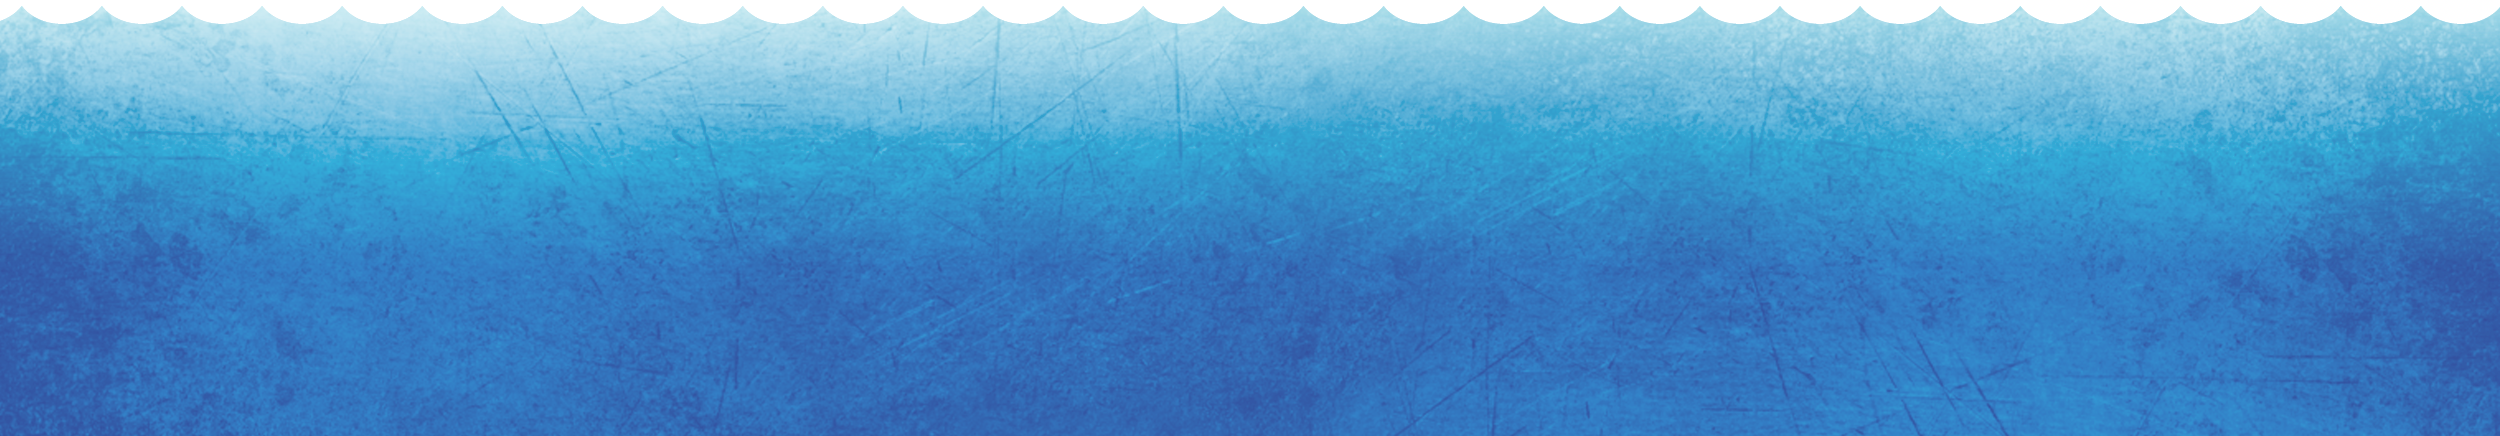 Cartoon water png. Sea images free download